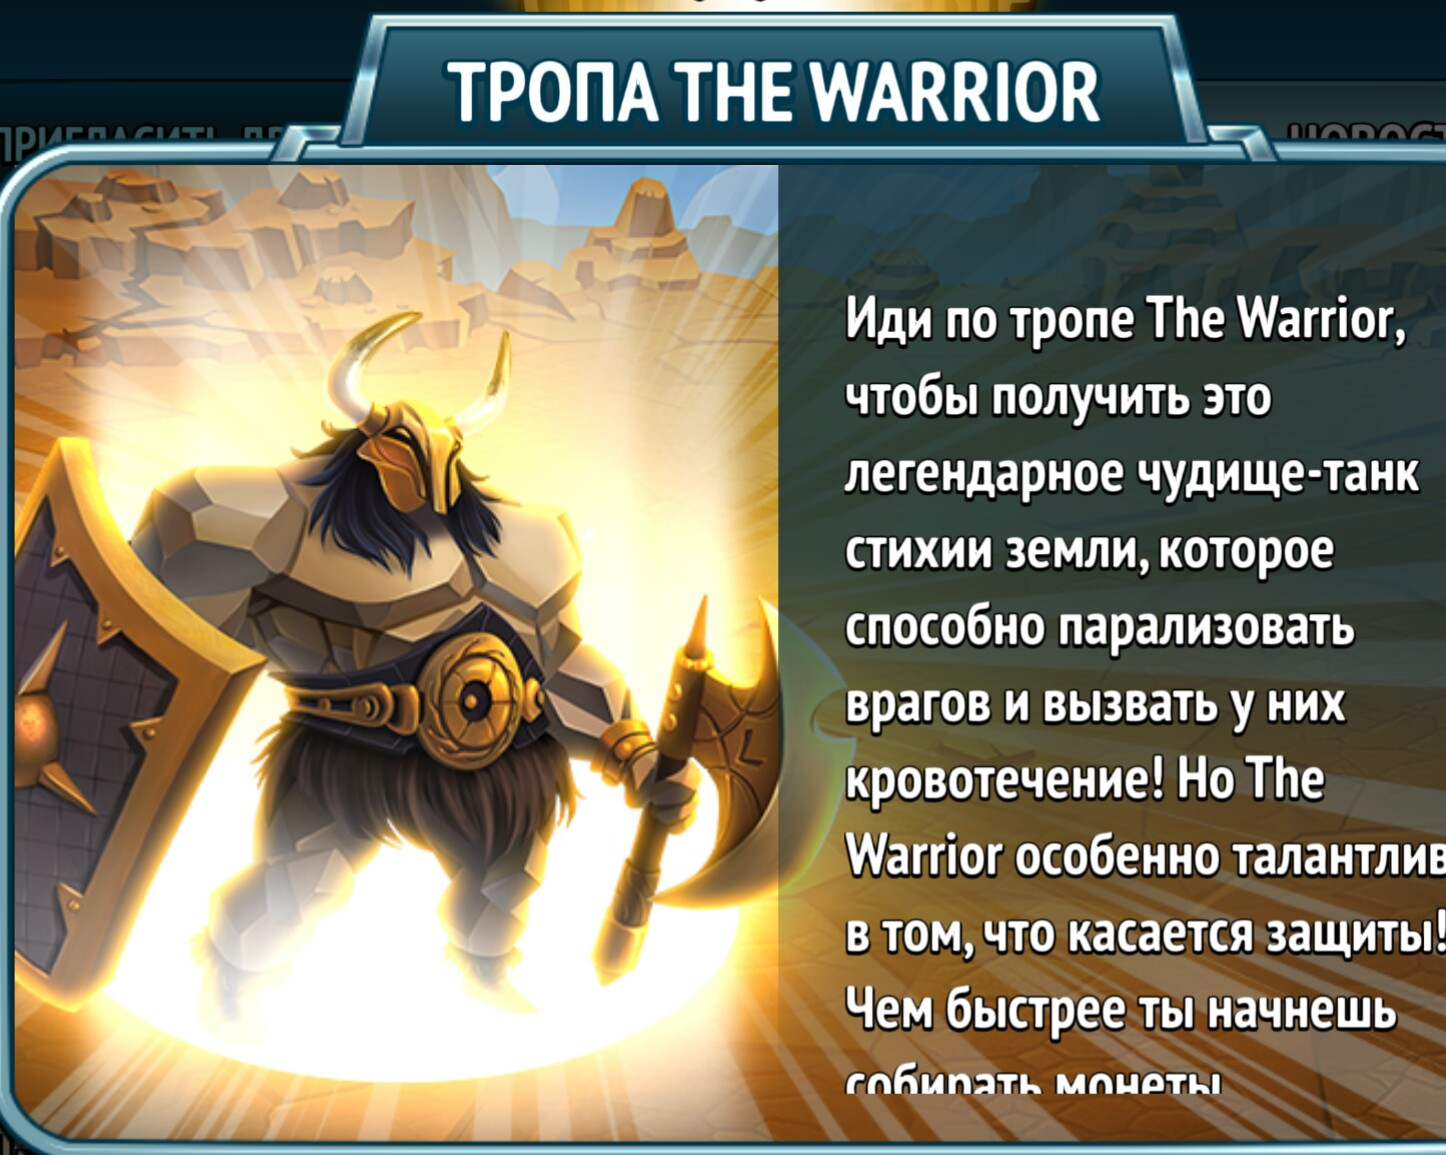 2018.09.19-Тропа The Warrior